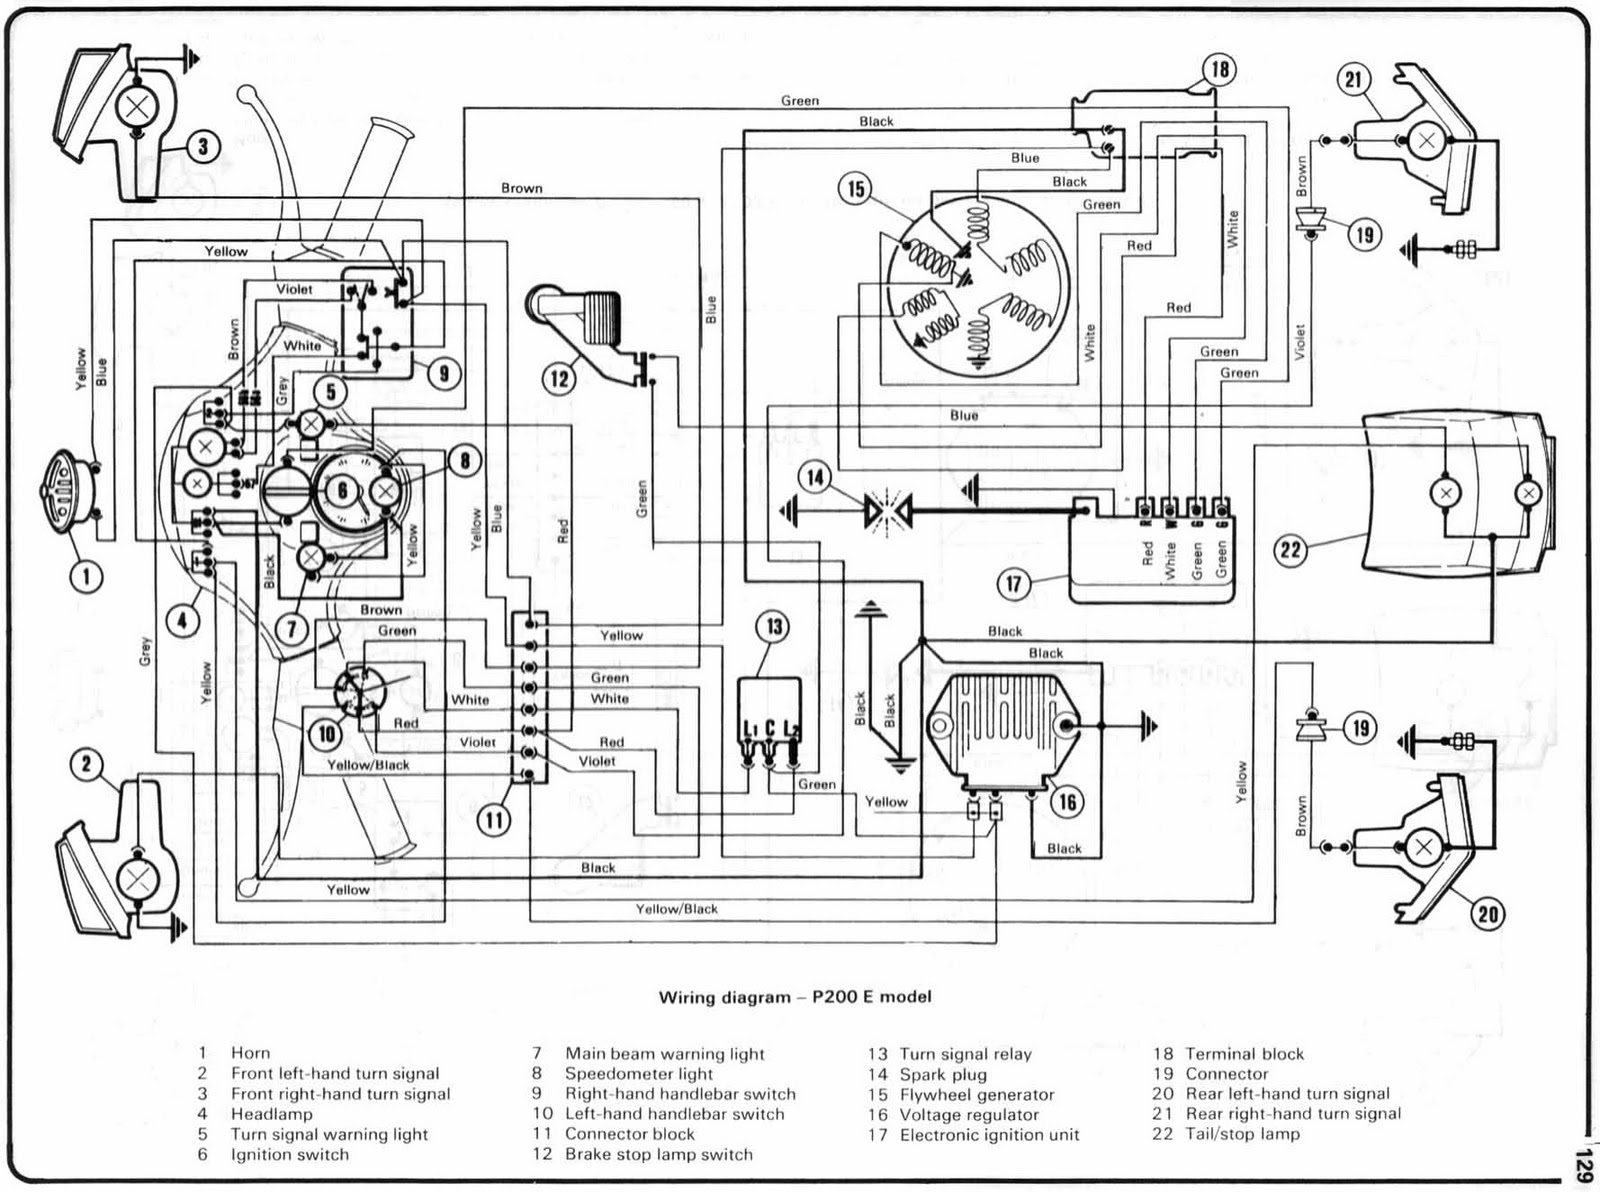 medium resolution of wiring diagrams 911 vespa p200 e model wiring diagram simple wiring schematics hvac wiring schematics